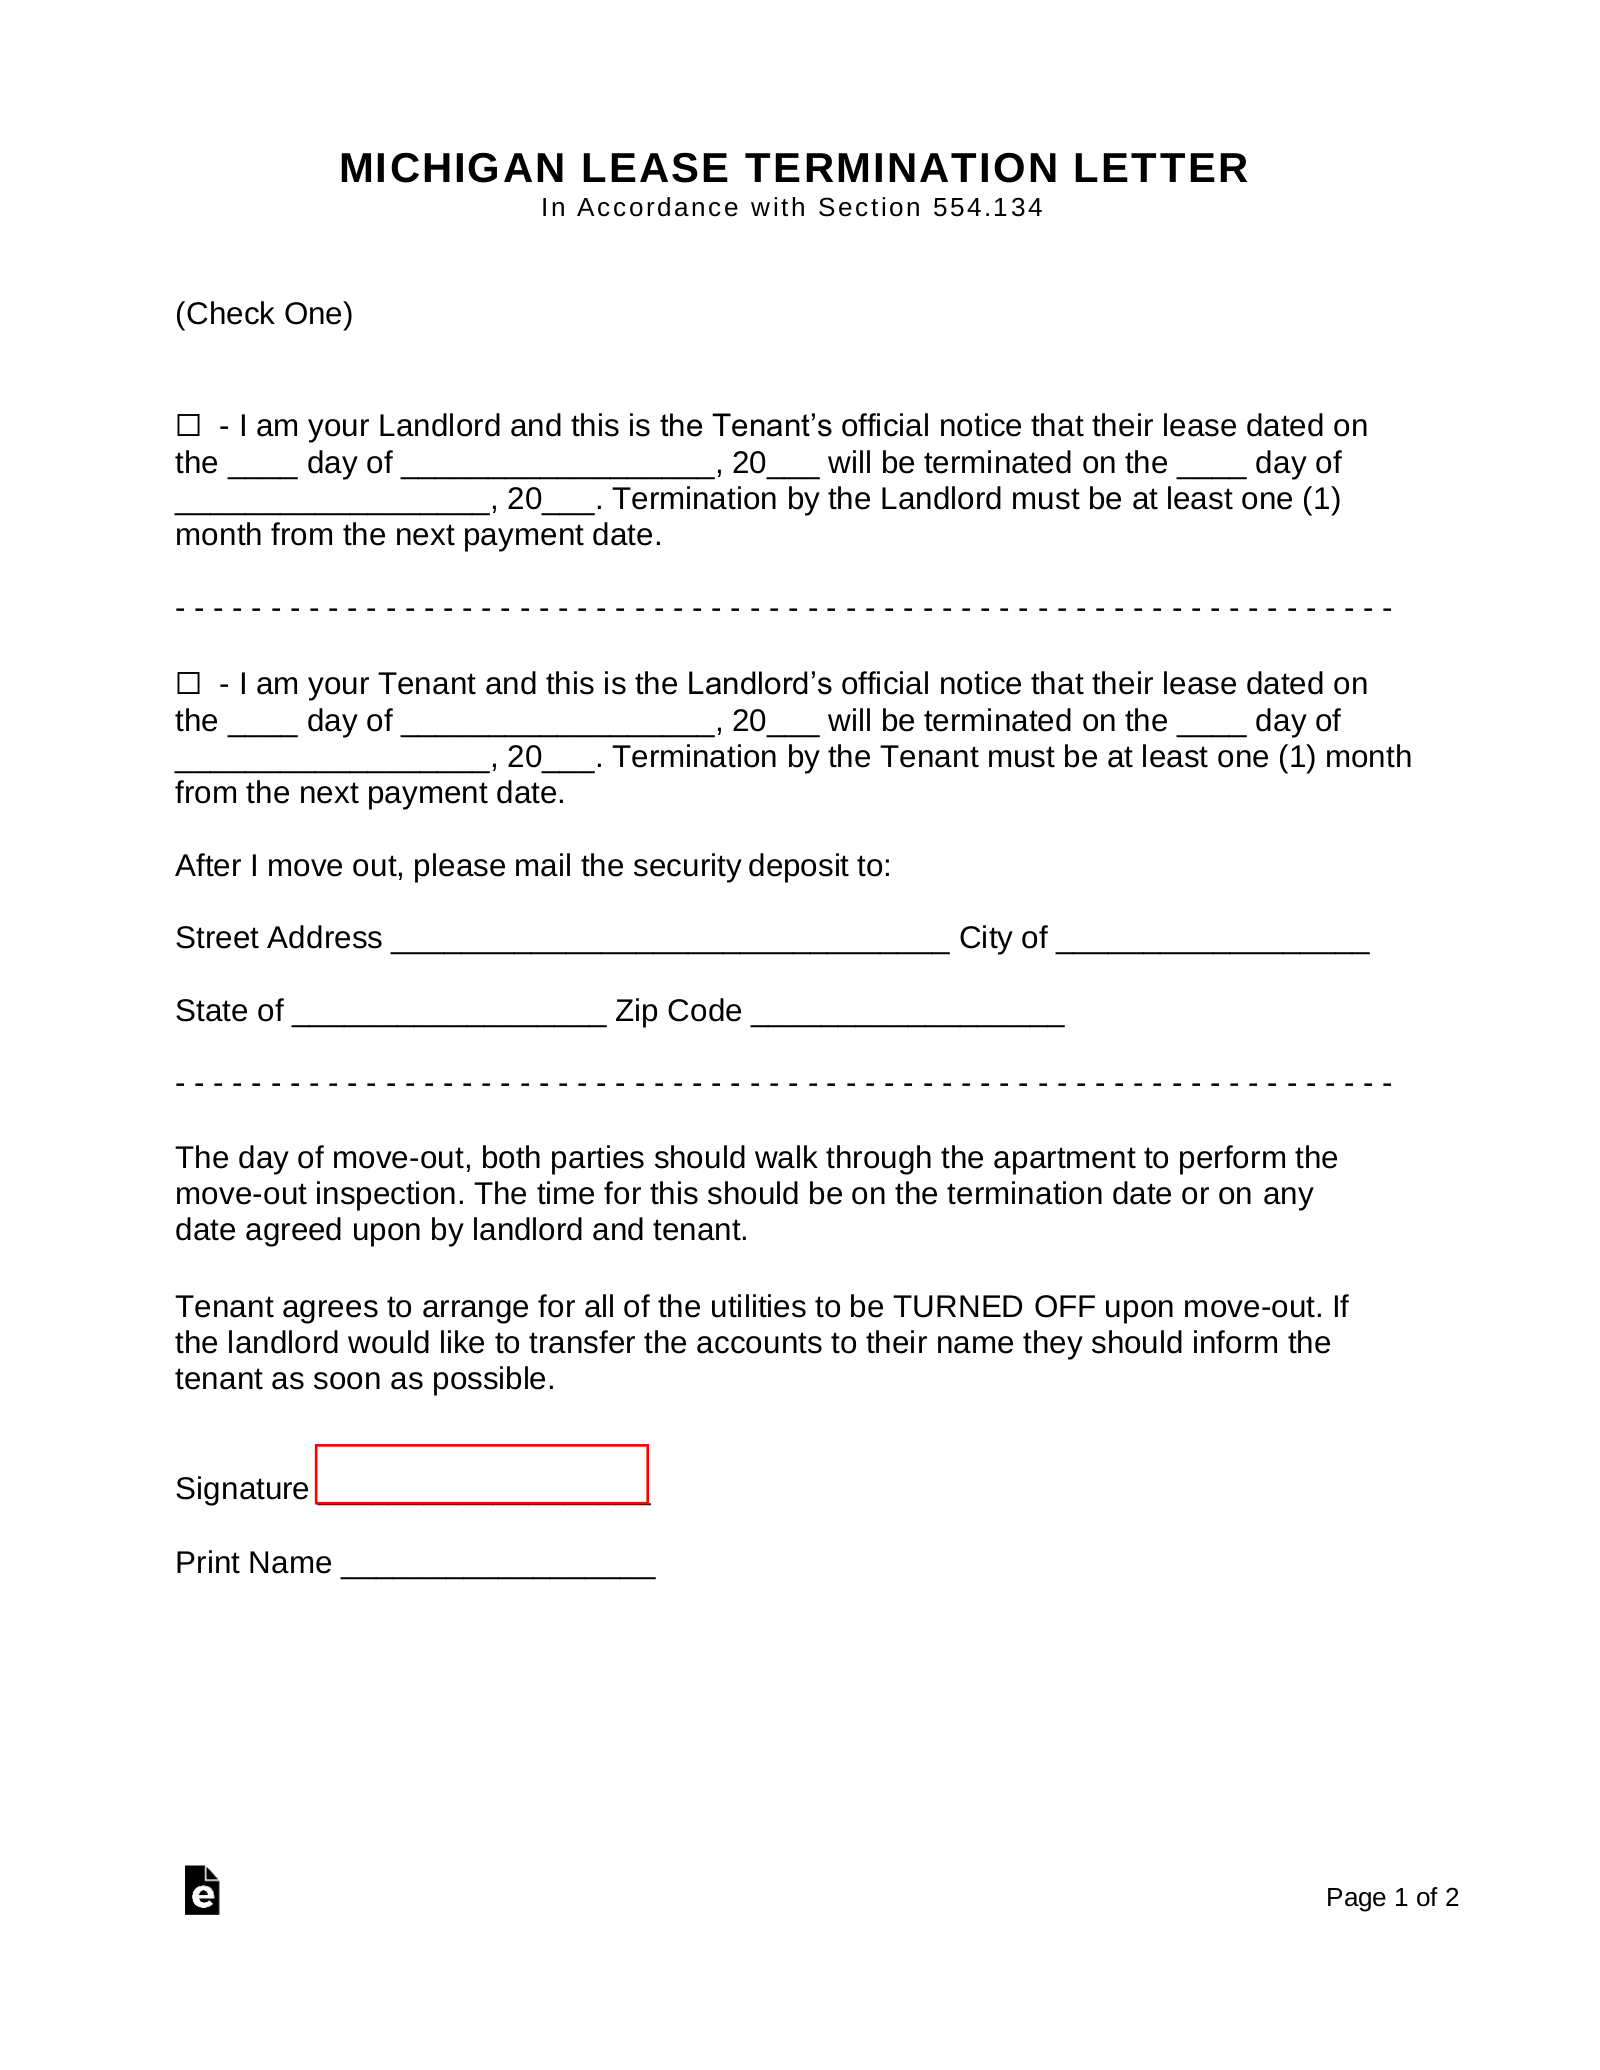 Michigan Lease Termination Letter Form 30 Day Notice